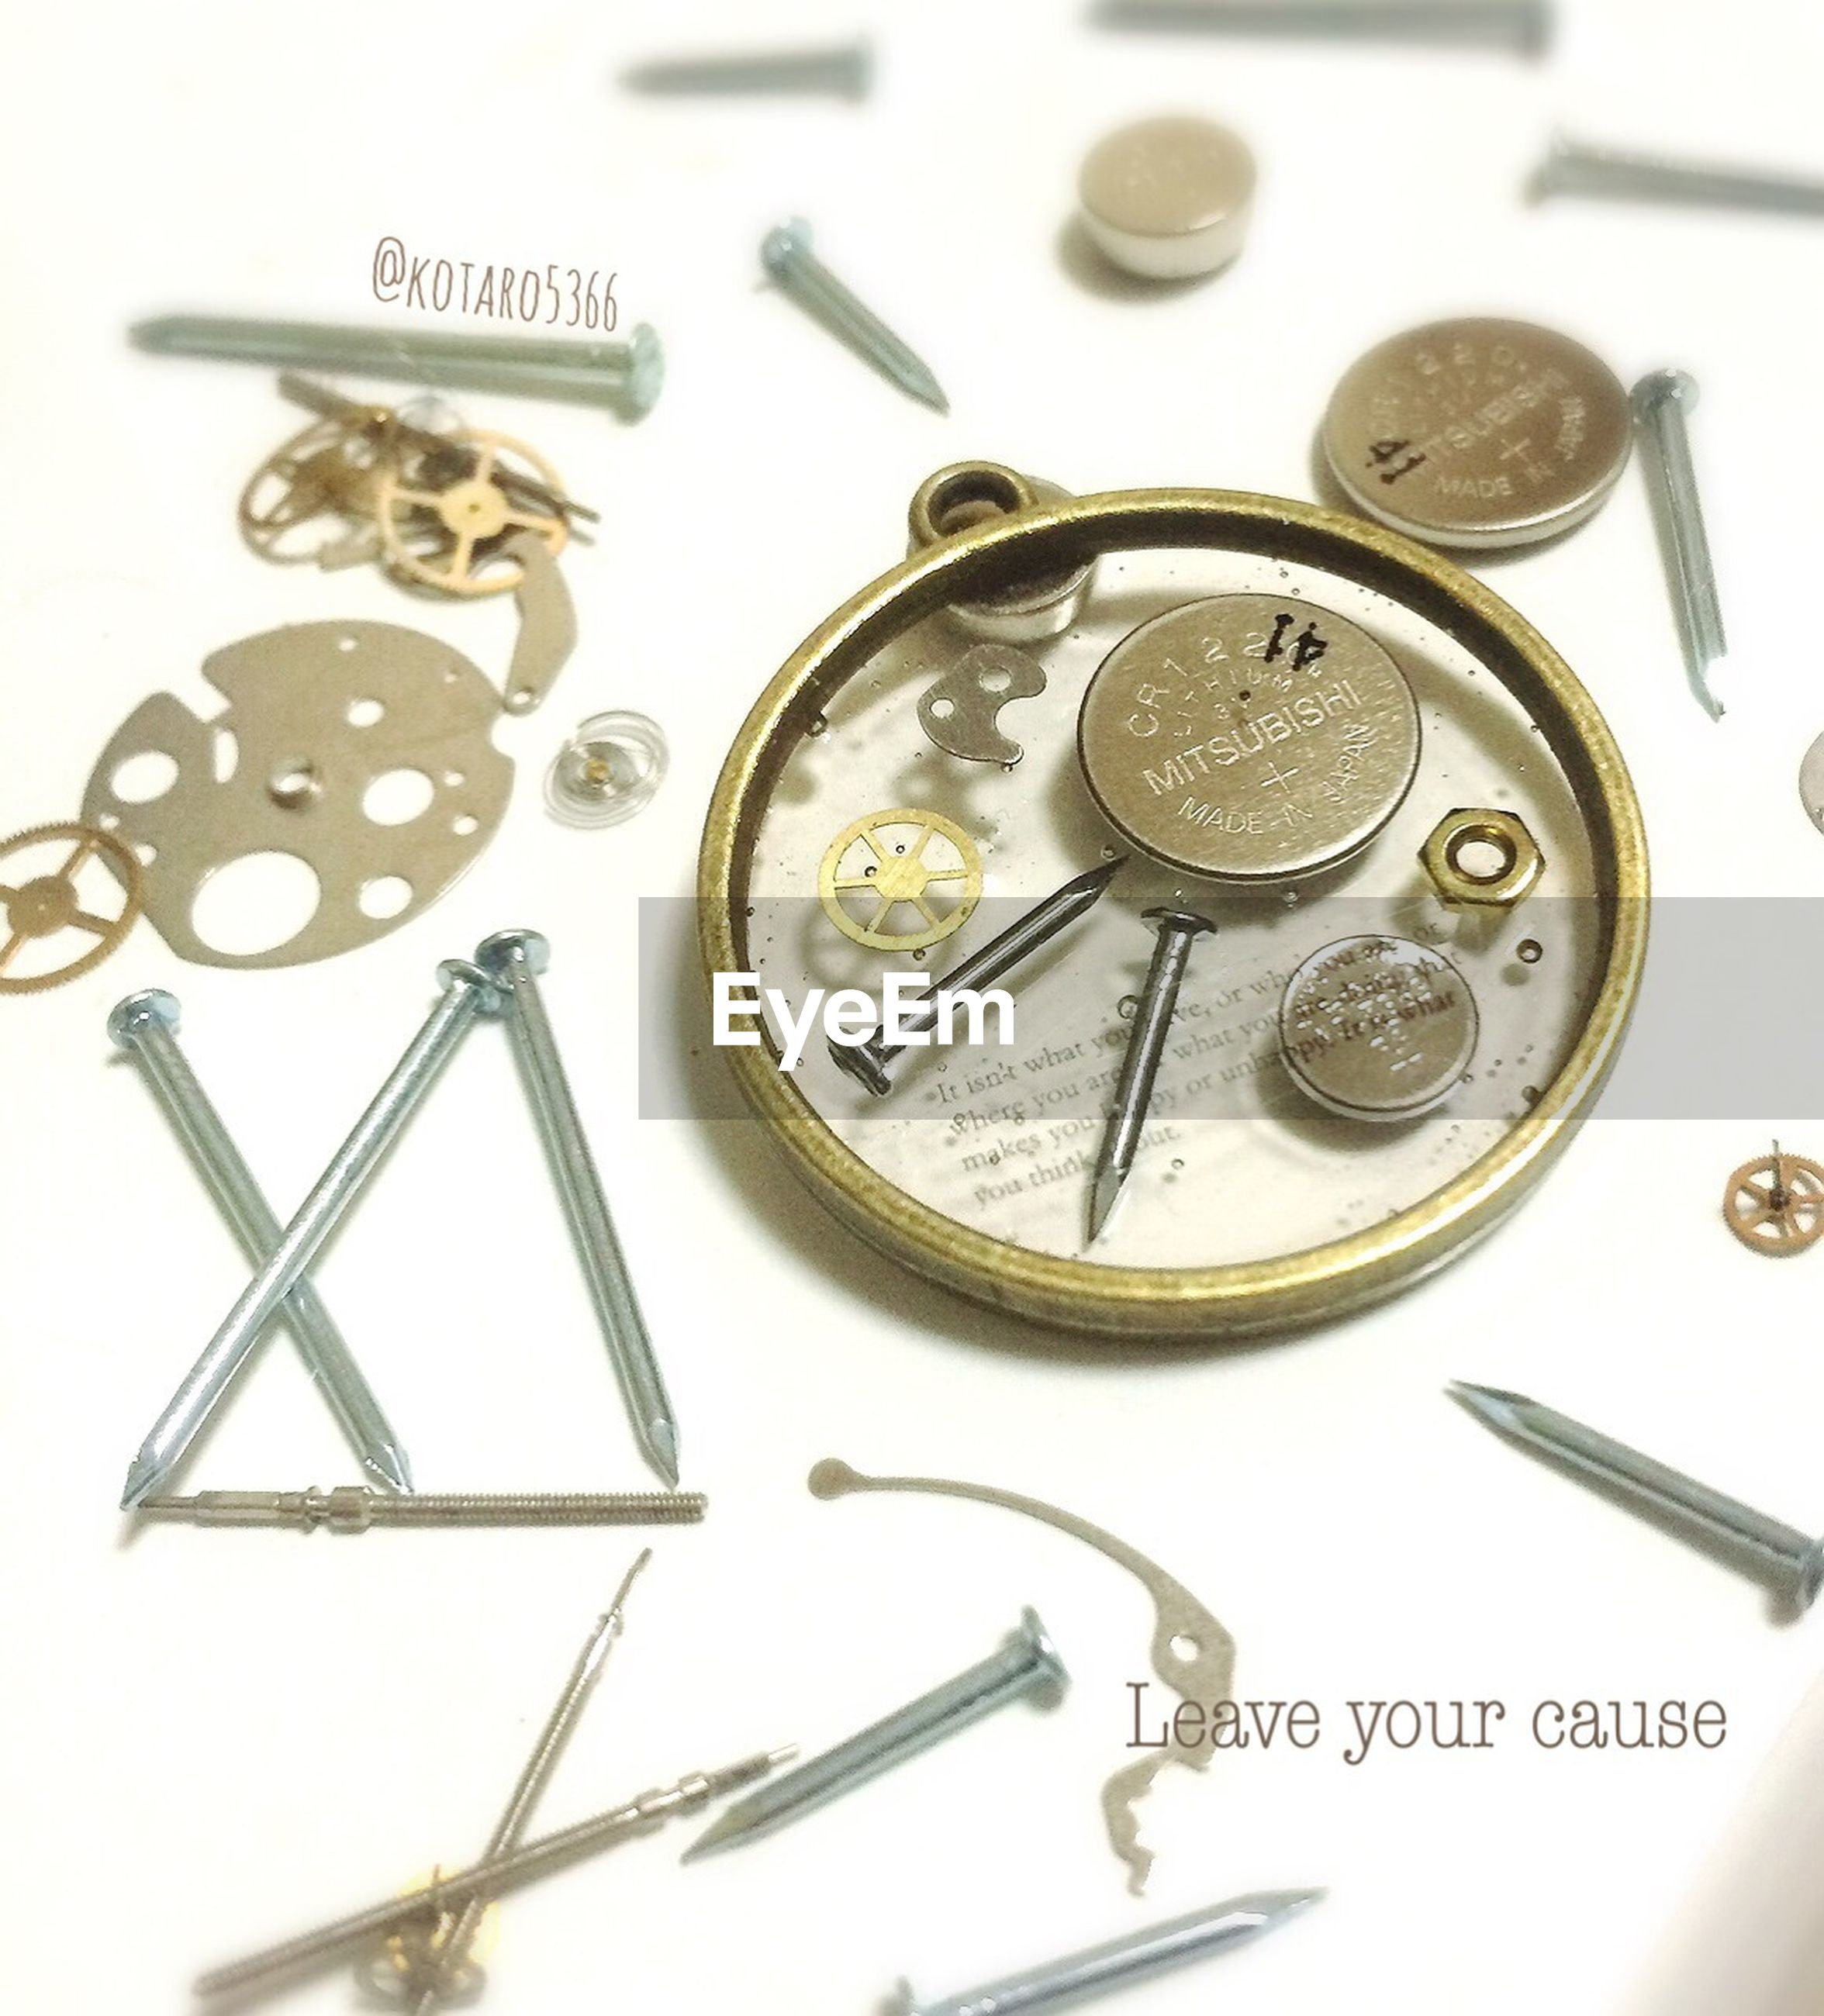 indoors, communication, close-up, number, technology, still life, metal, text, old-fashioned, retro styled, studio shot, western script, accuracy, time, connection, clock, white background, antique, equipment, telephone